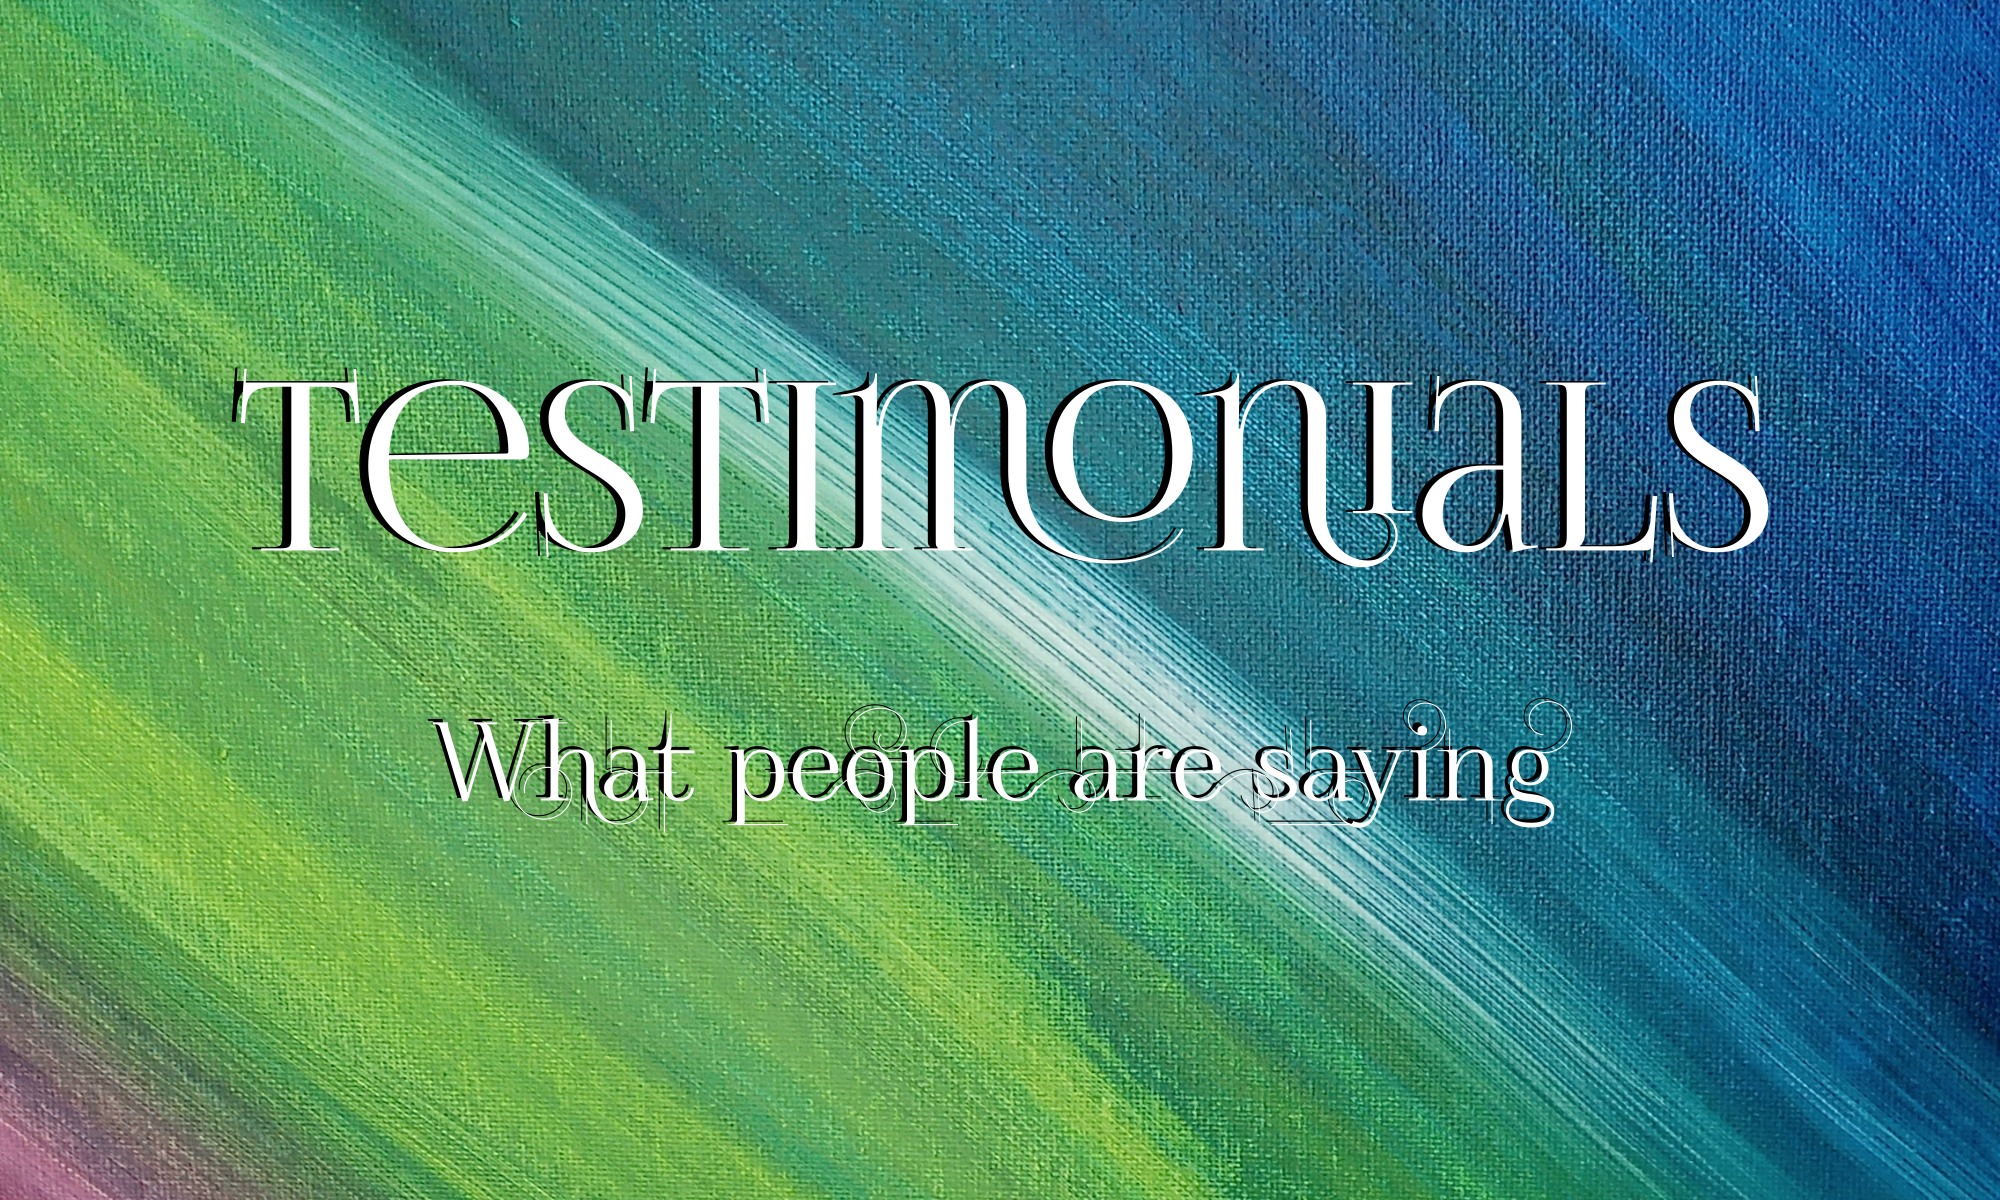 Testimonials - what people are saying